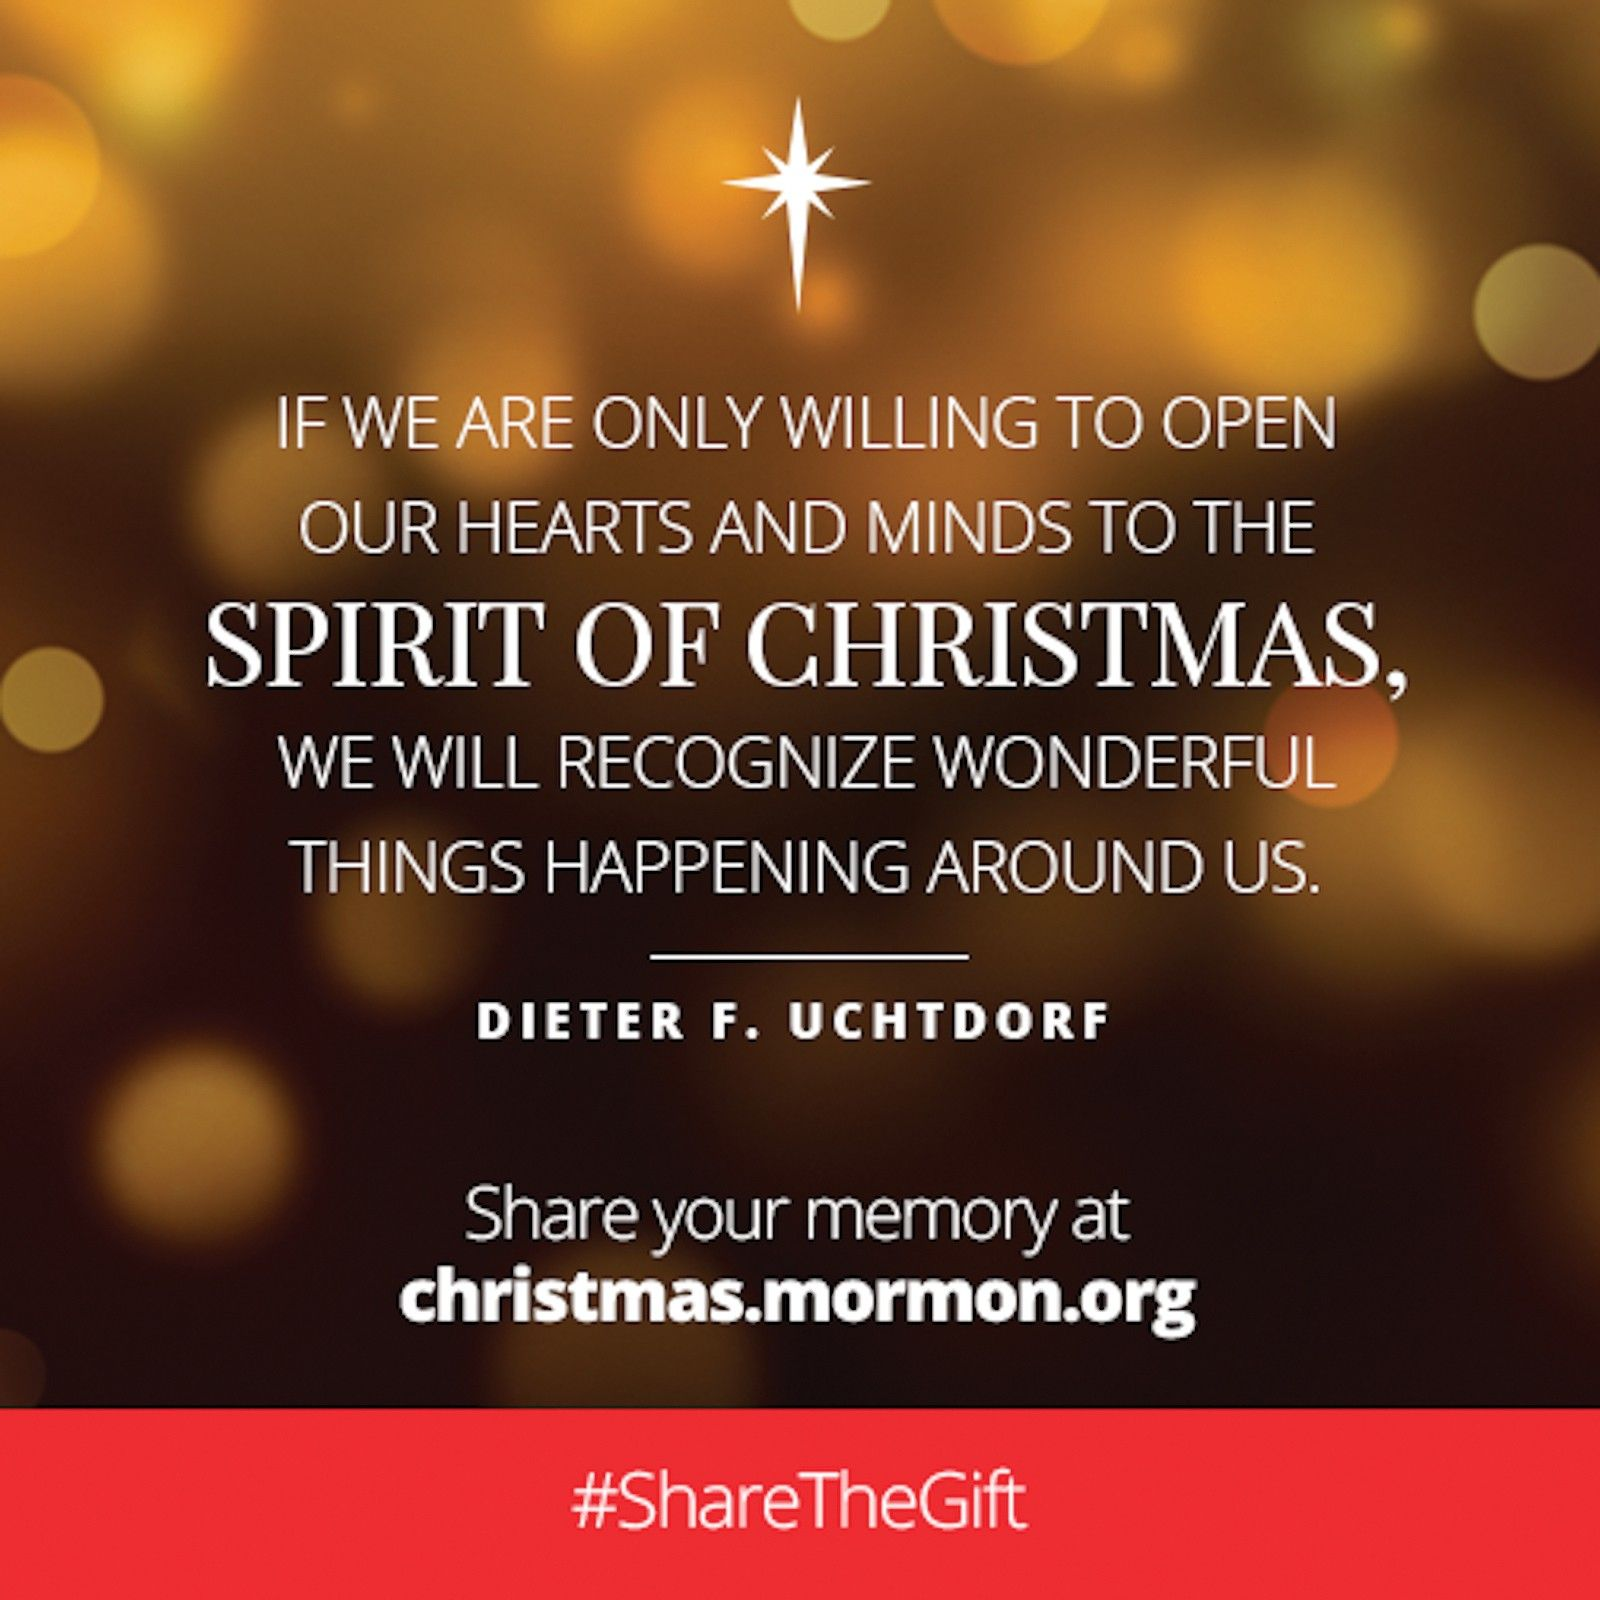 """""""If we are only willing to open our hearts and minds to the spirit of Christmas, we will recognize wonderful things happening around us.""""—President Dieter F. Uchtdorf, """"Of Curtains, Contentment, and Christmas"""""""